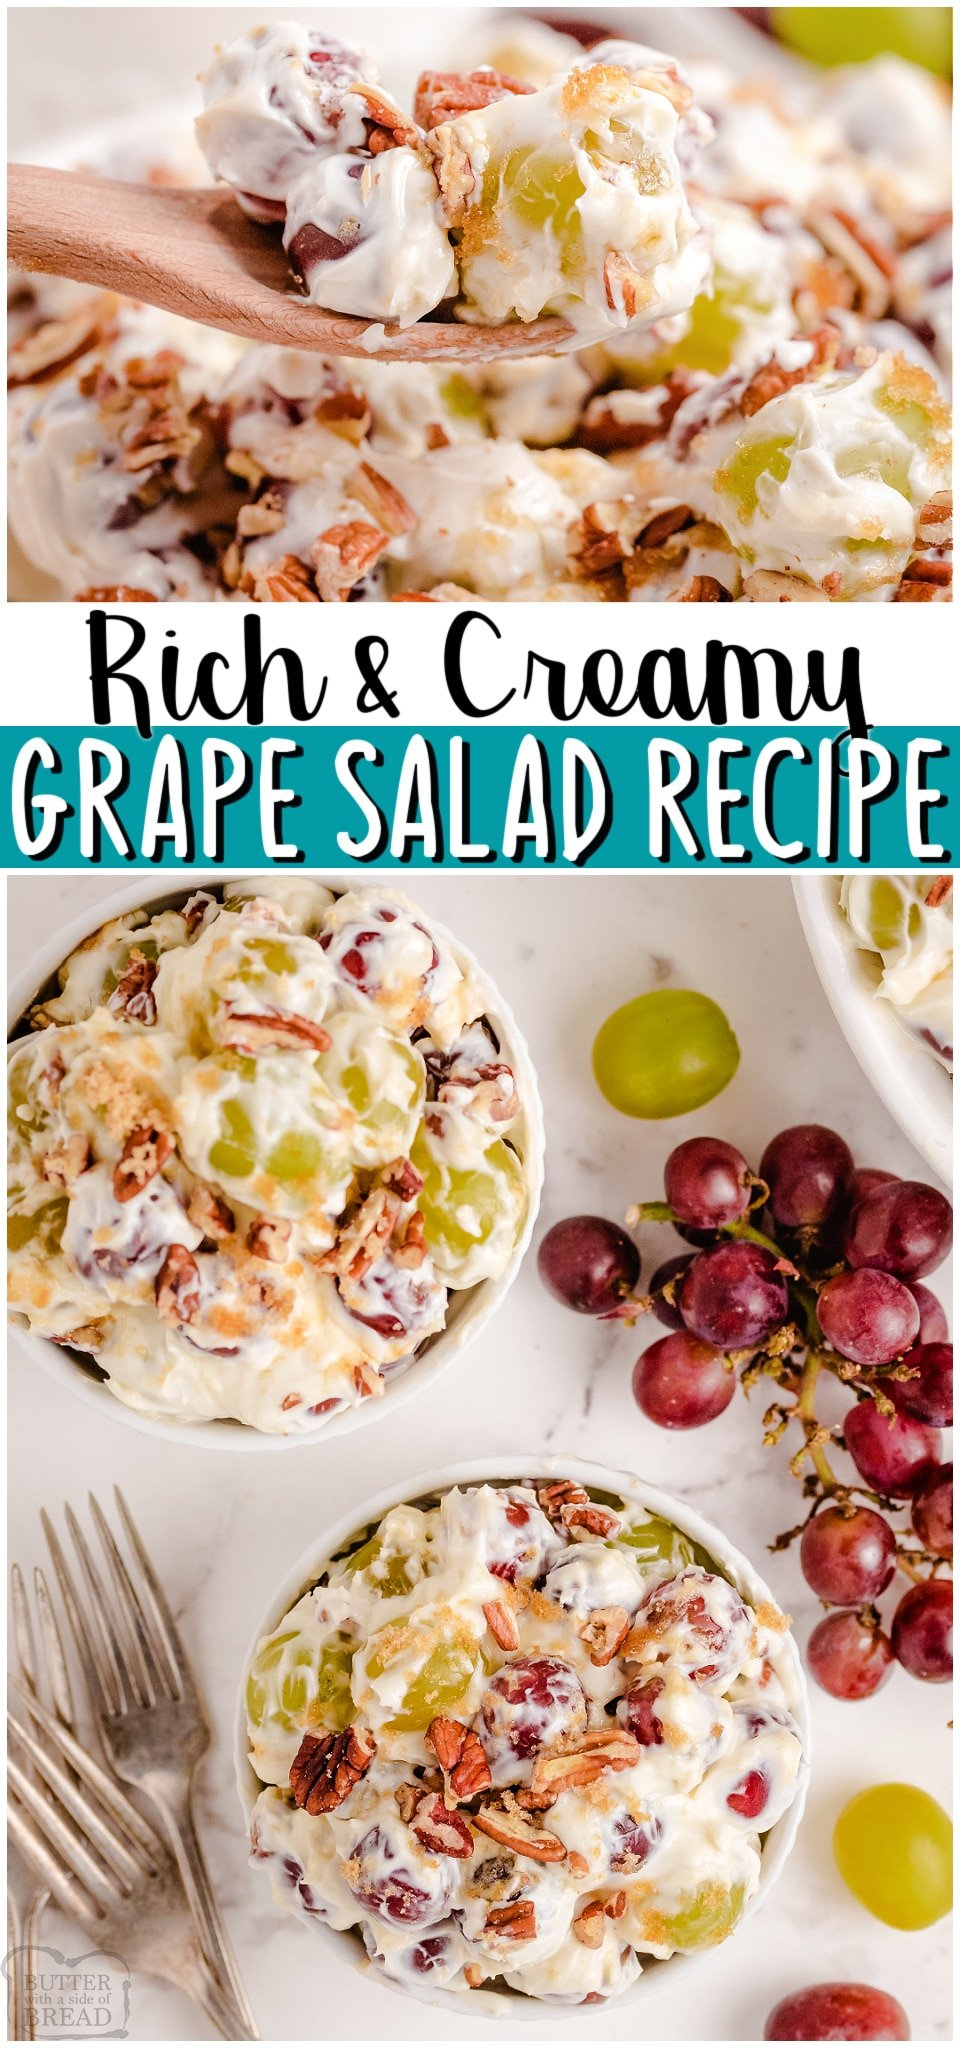 Red and Green Grape Salad tossed with a sweet cream cheese mixture then topped with brown sugar & chopped pecans. Decadent Creamy Grape Salad recipe perfect for special occasions!#grapes #salad #creamcheese #easyrecipe from BUTTER WITH A SIDE OF BREAD